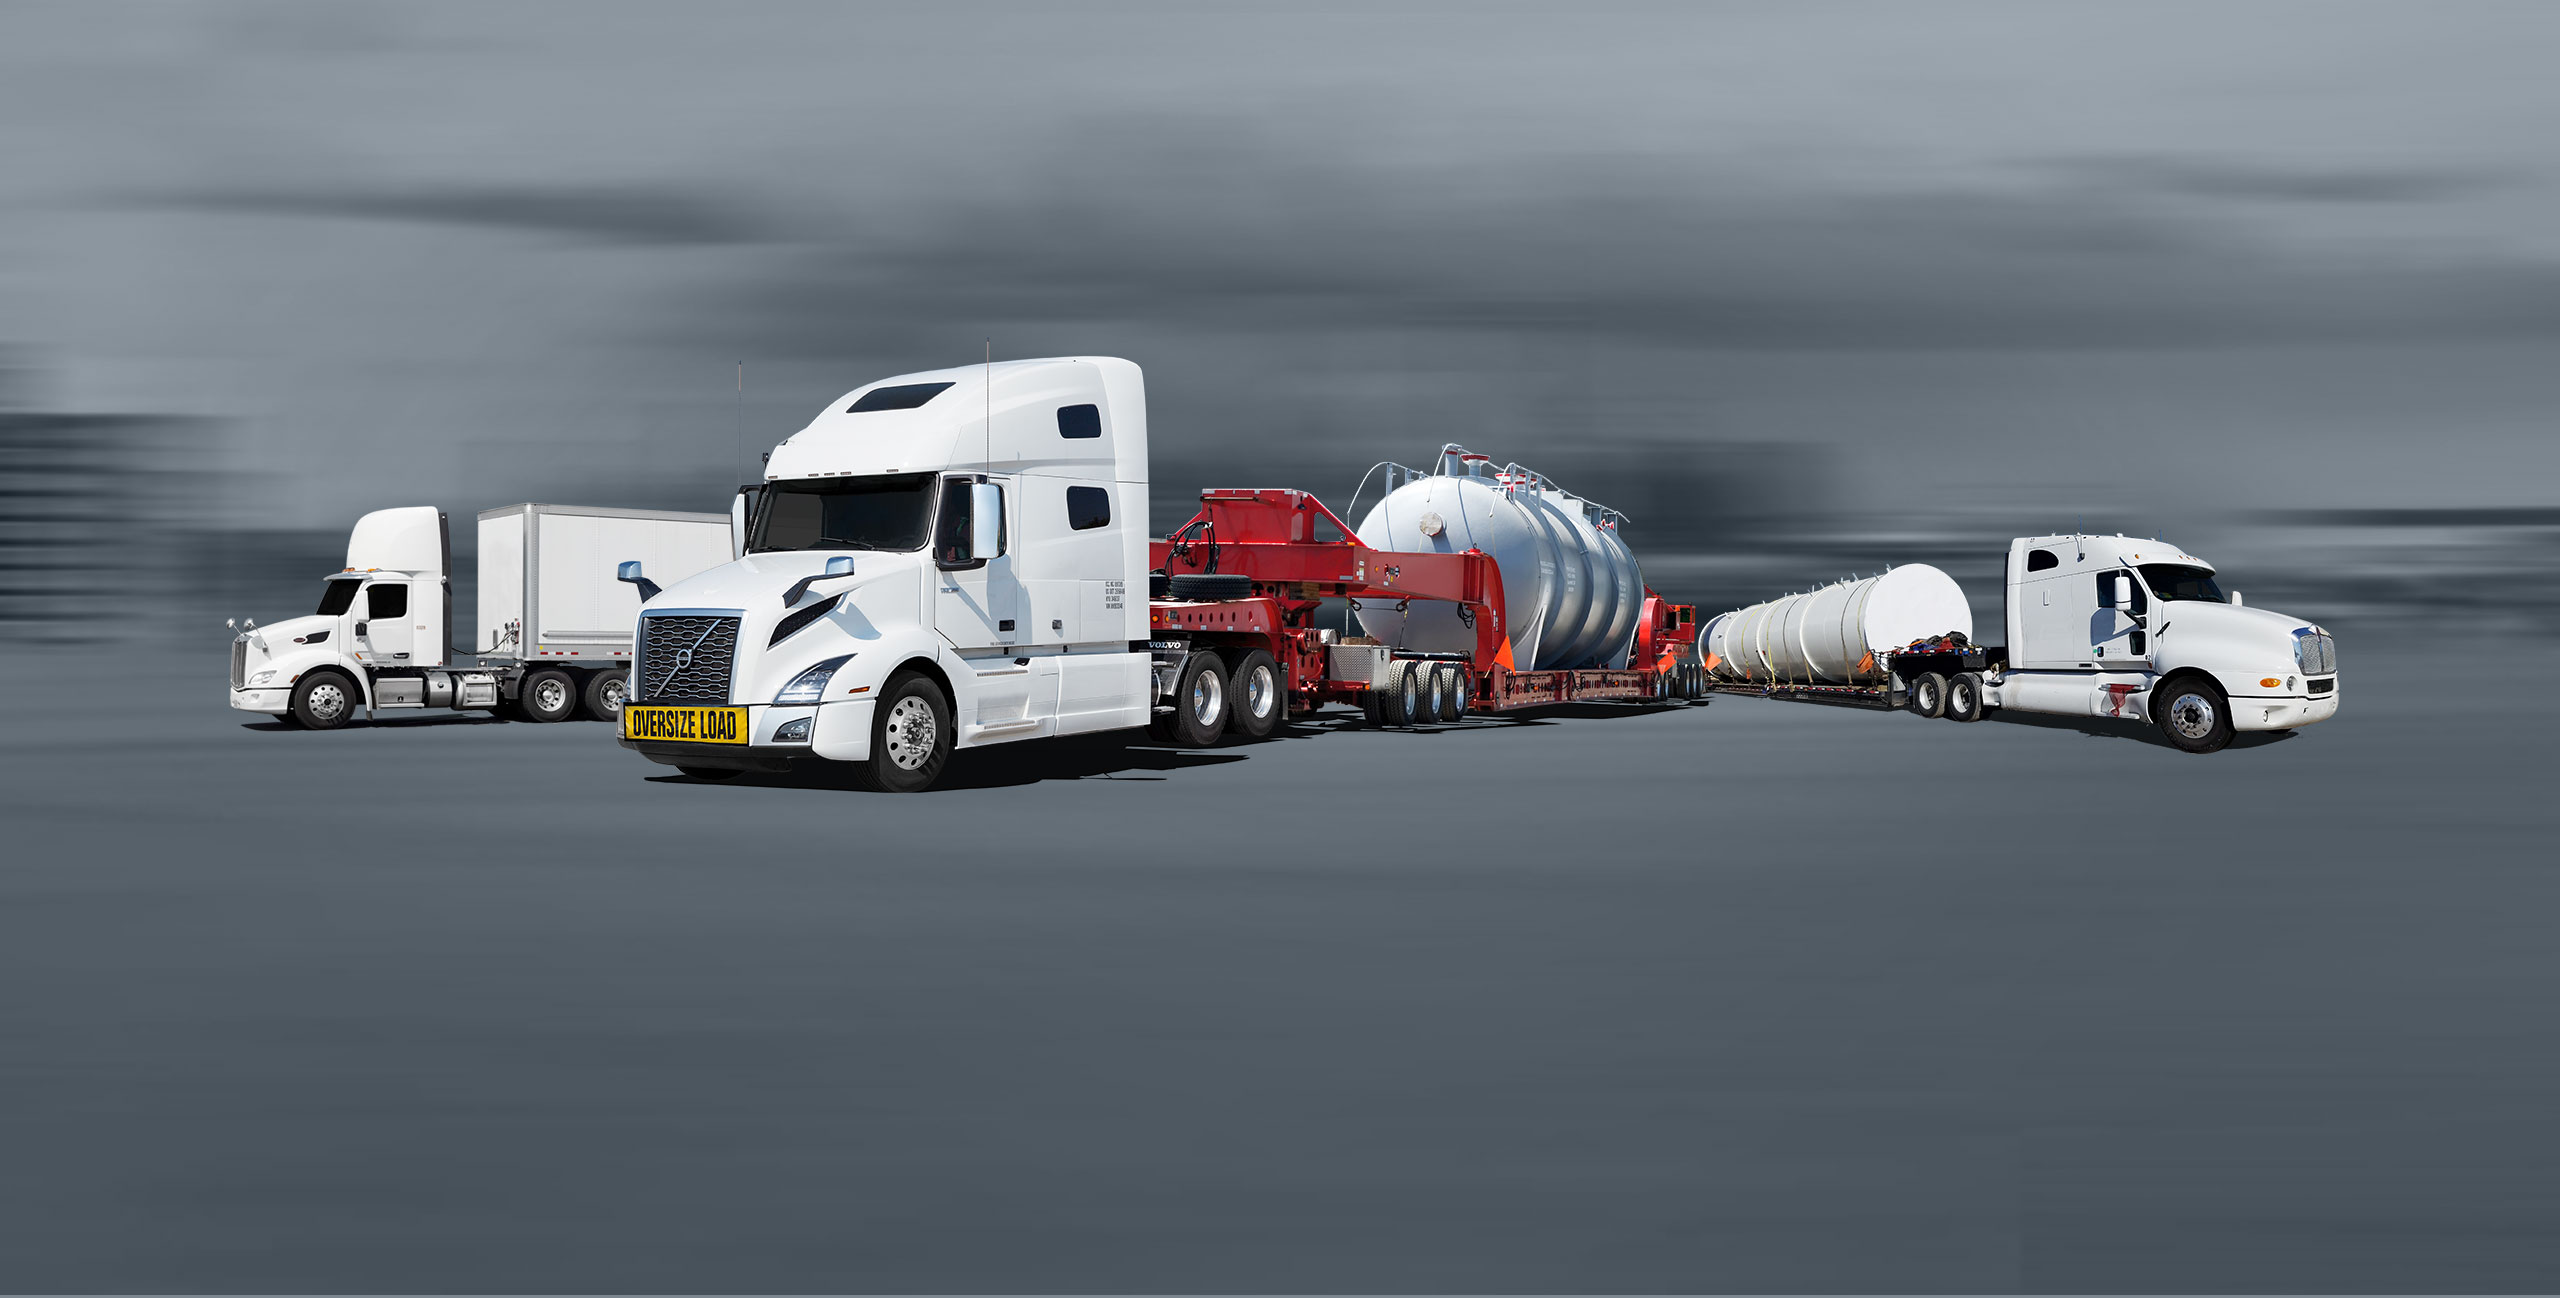 Transport trucks with dry van and flatbed trailers